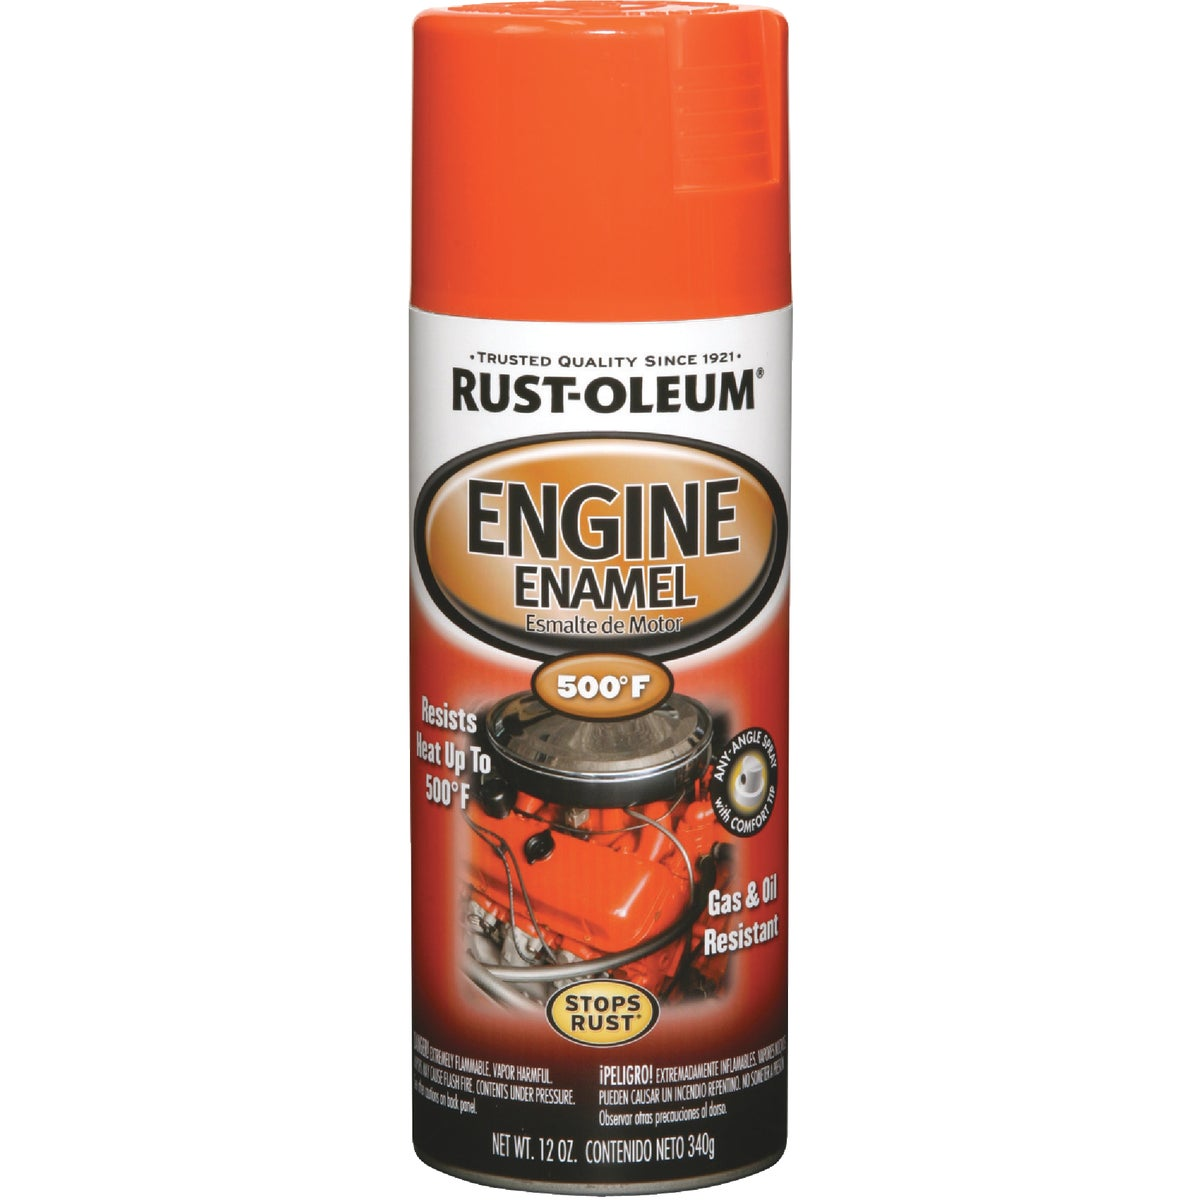 CHEVY ORNG ENGINE ENAMEL - 248941 by Rustoleum